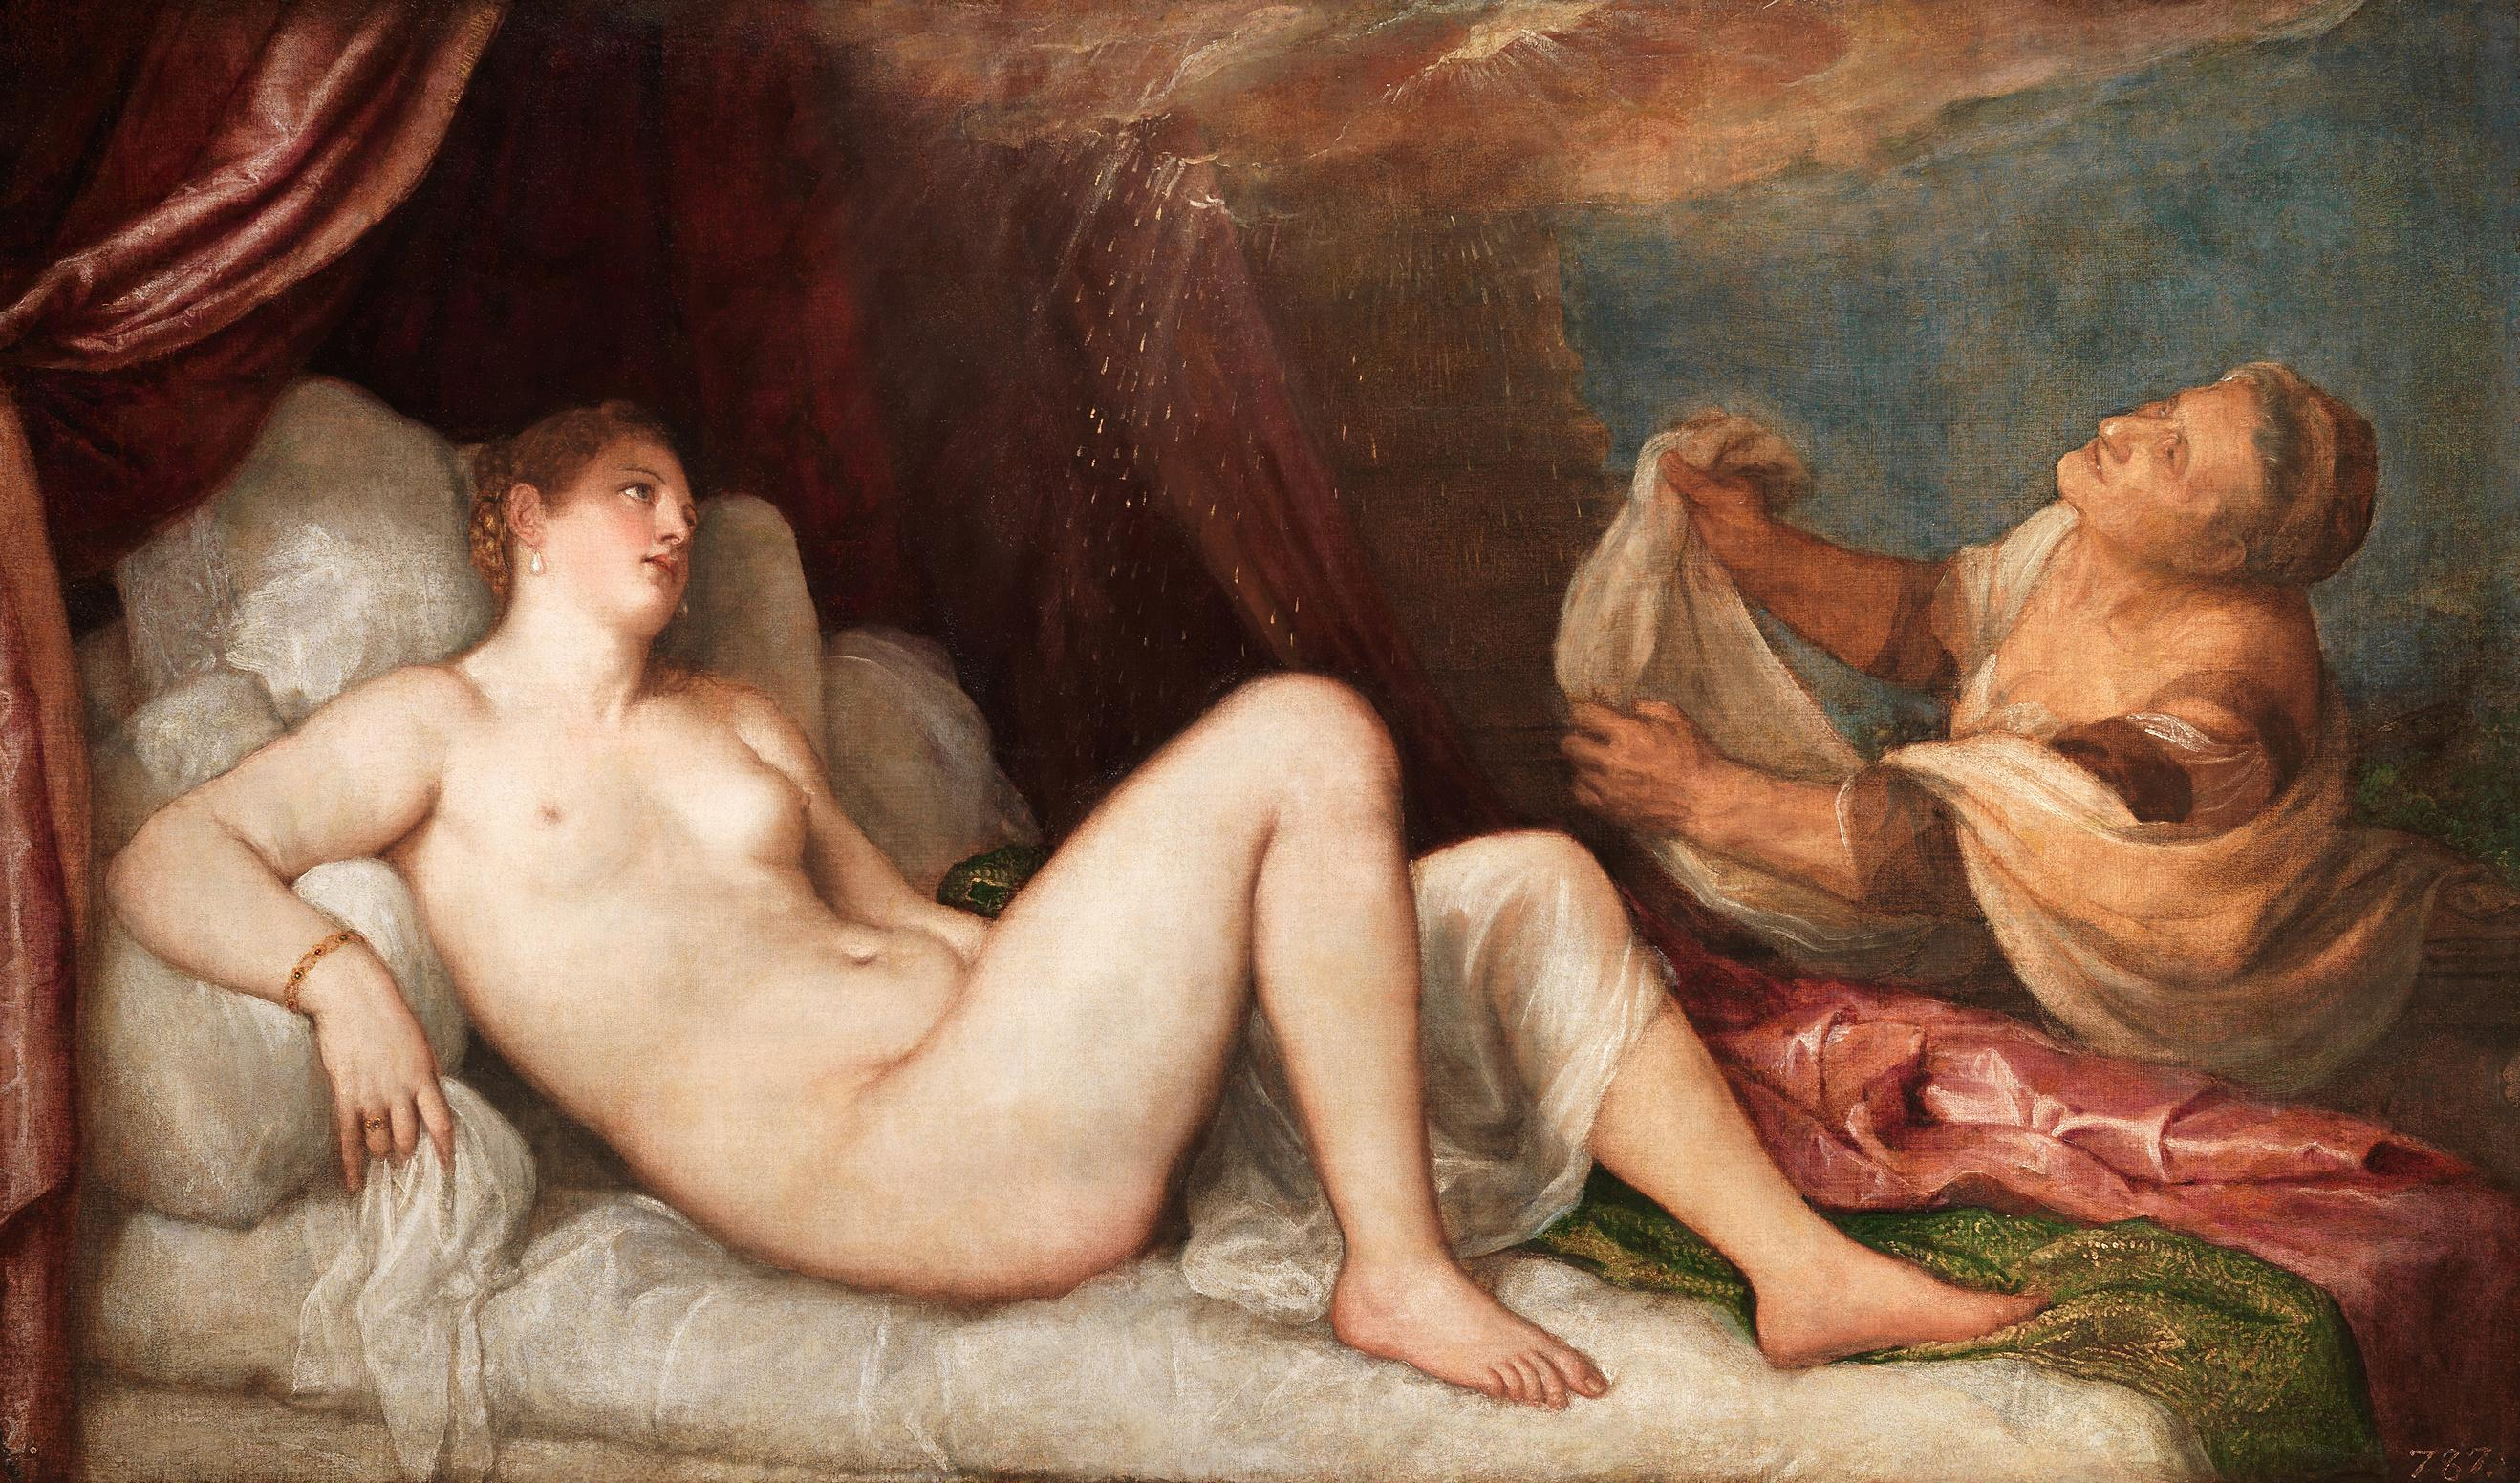 Titian expert says lauded painting is not by the master